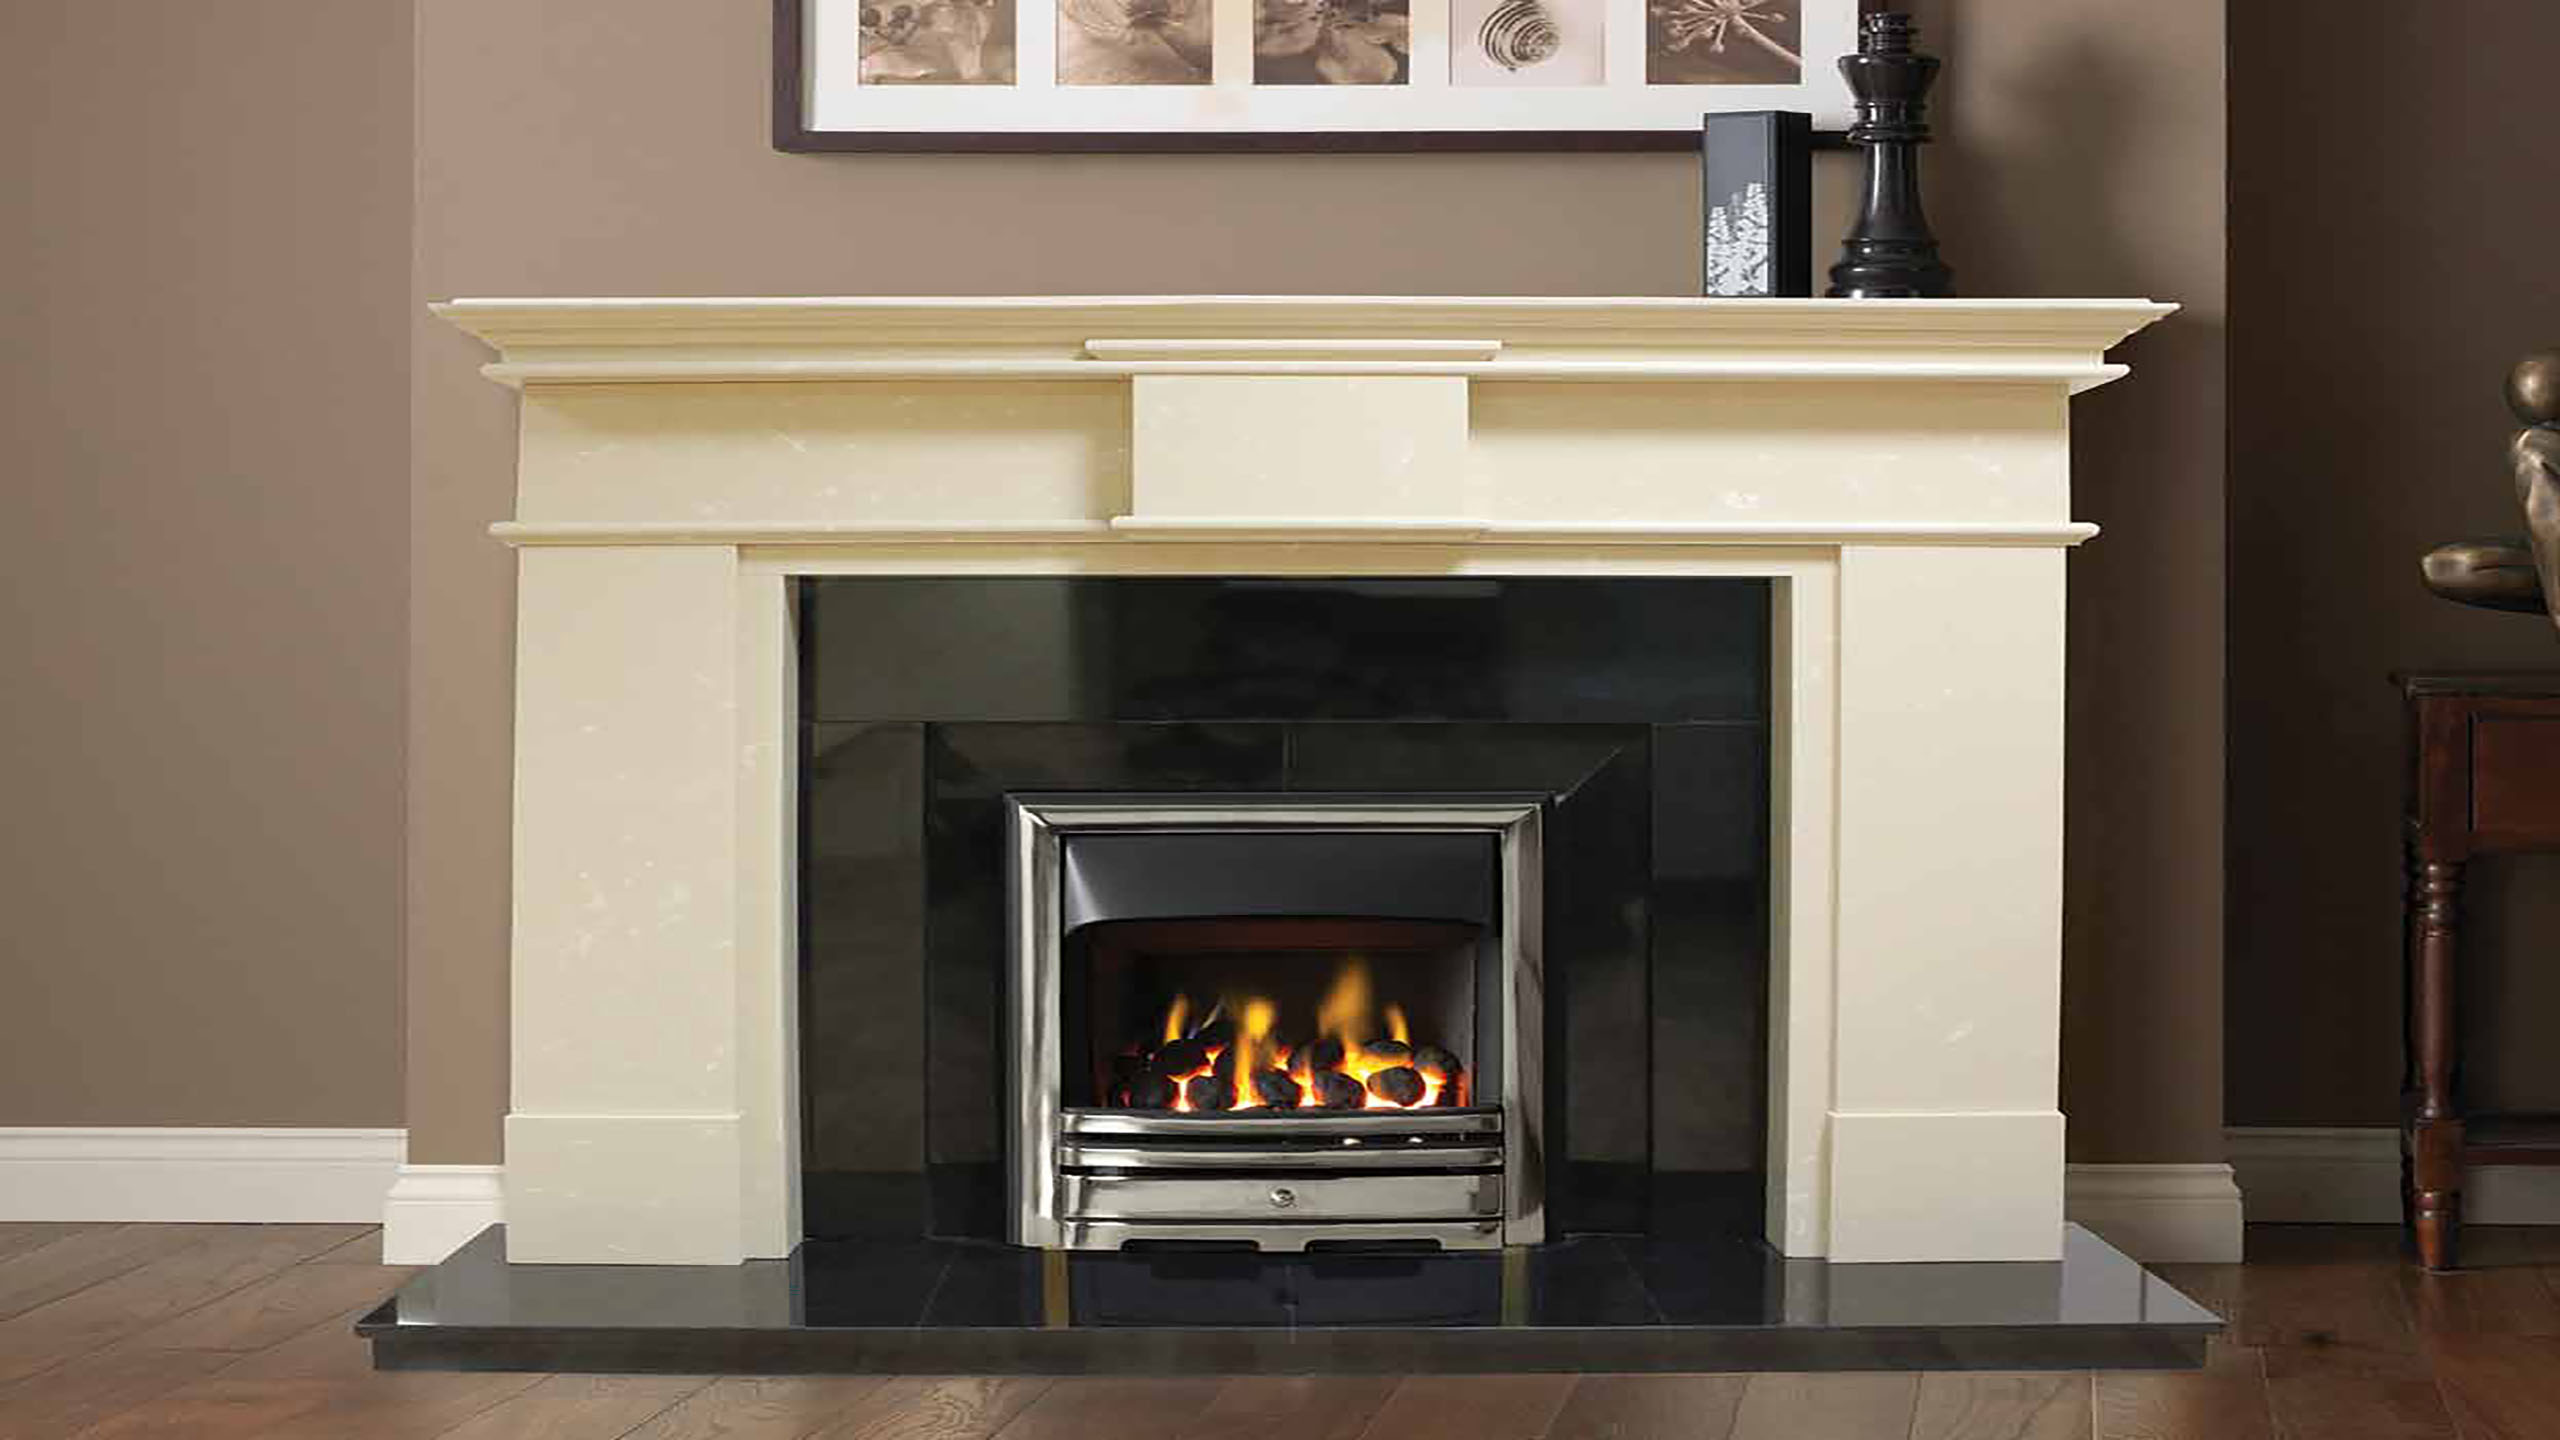 Header Image - Maynooth Fireplaces & Stoves